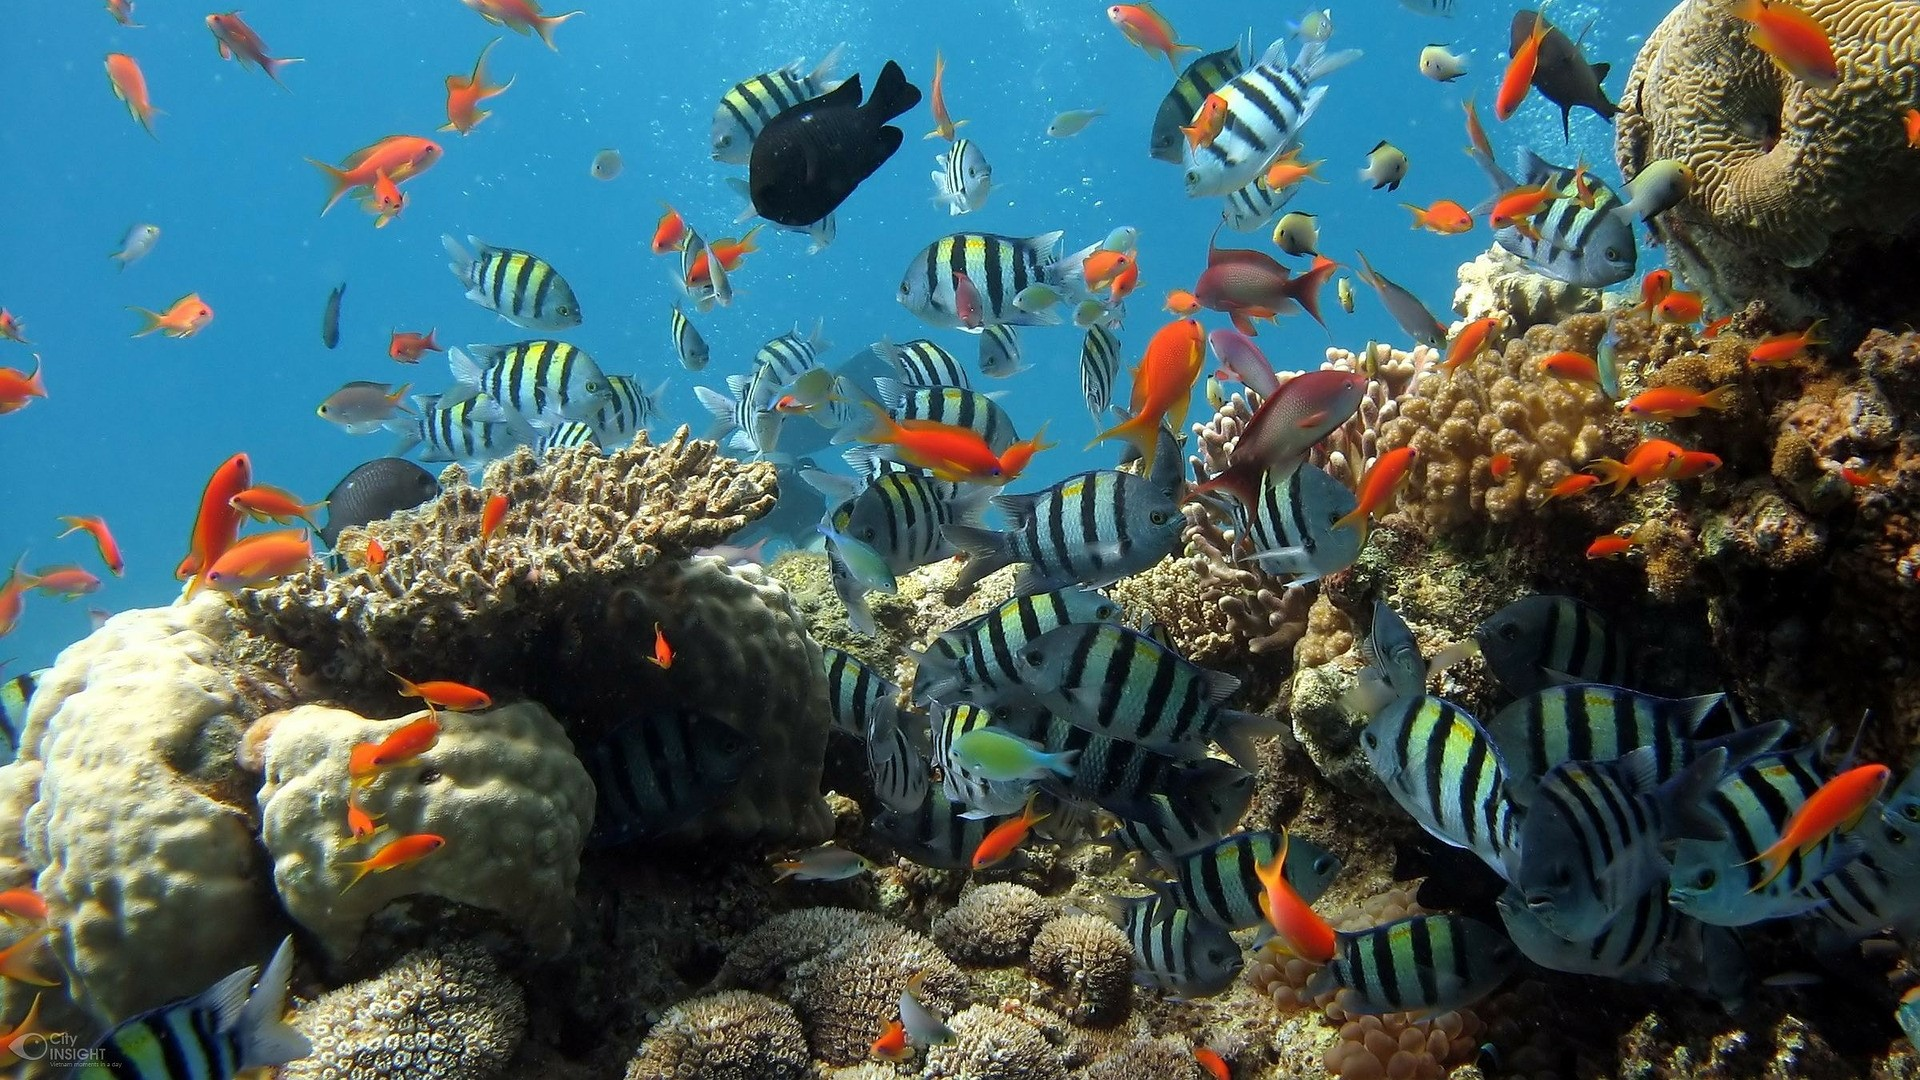 The National Park Of Aqaba In Red Sea Is Situated Perfectly So You Can Explore The Reef Life.